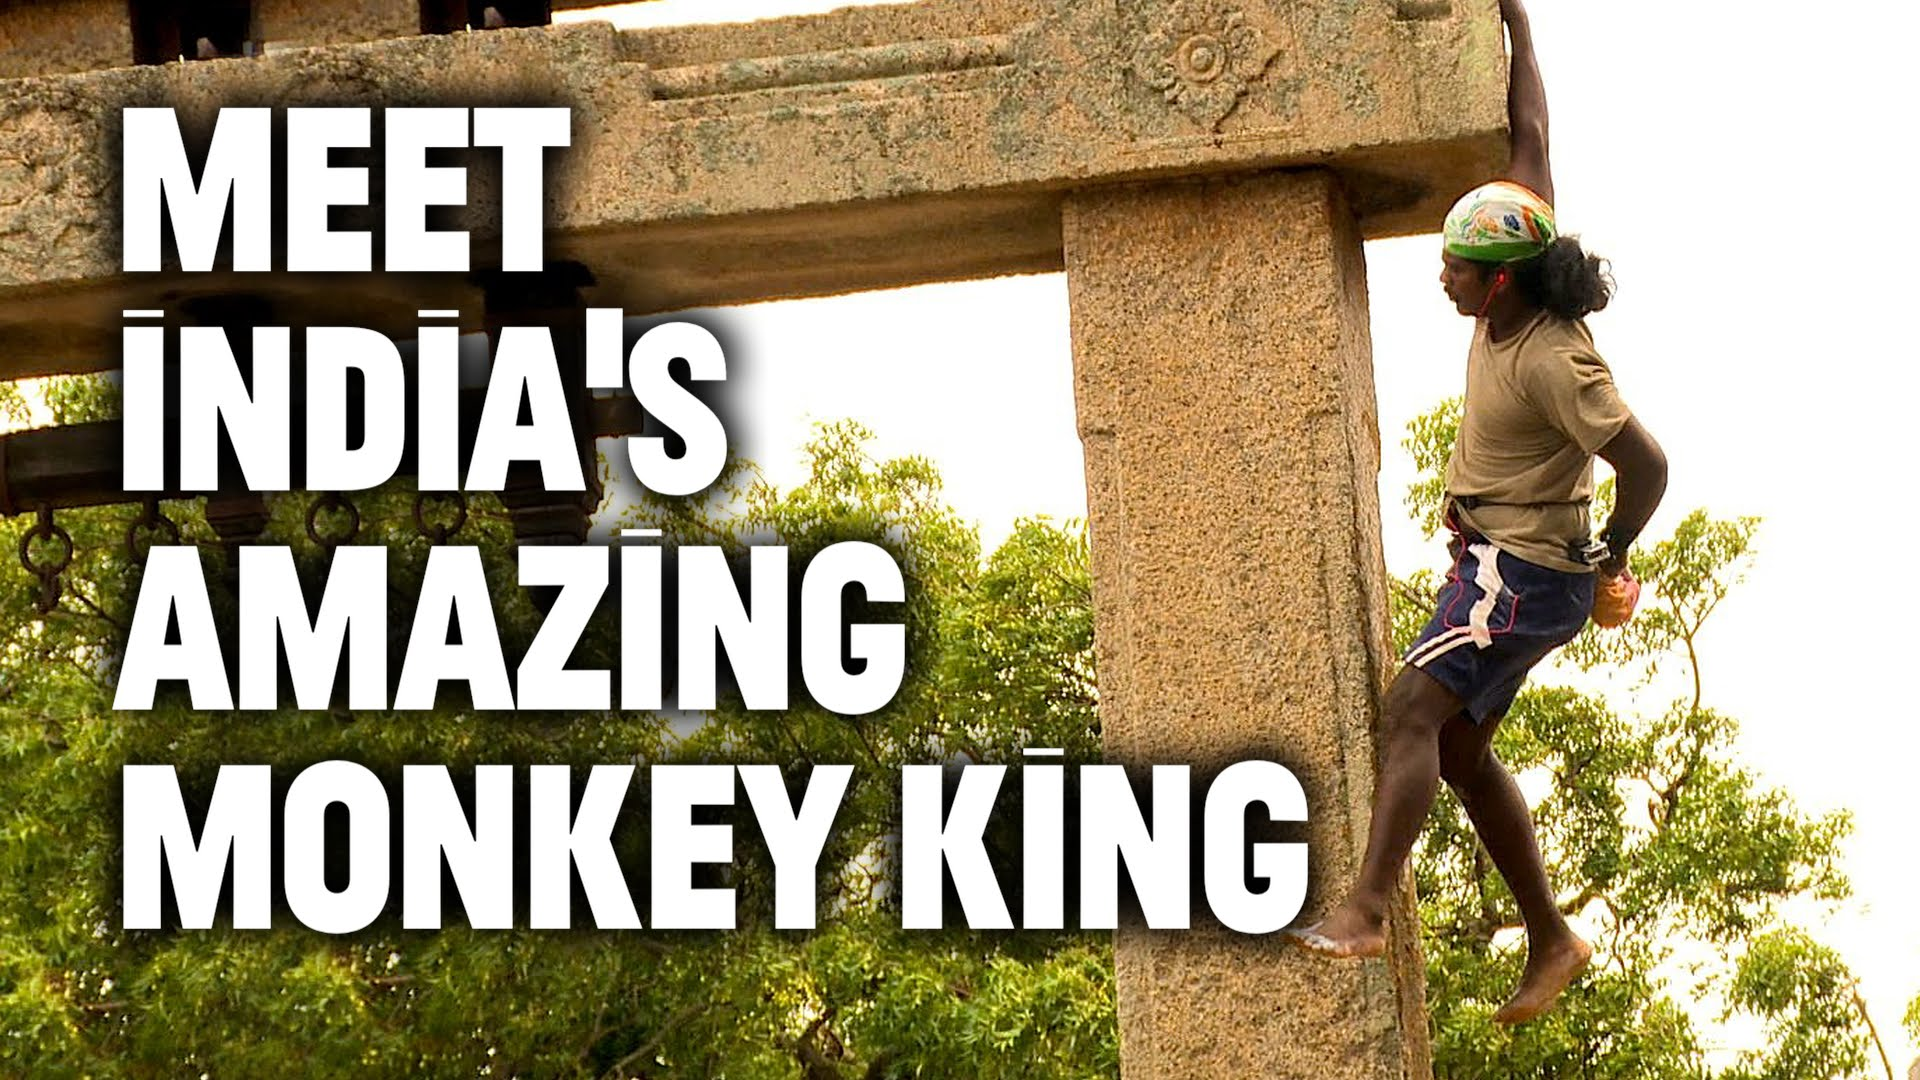 Monkey king of India